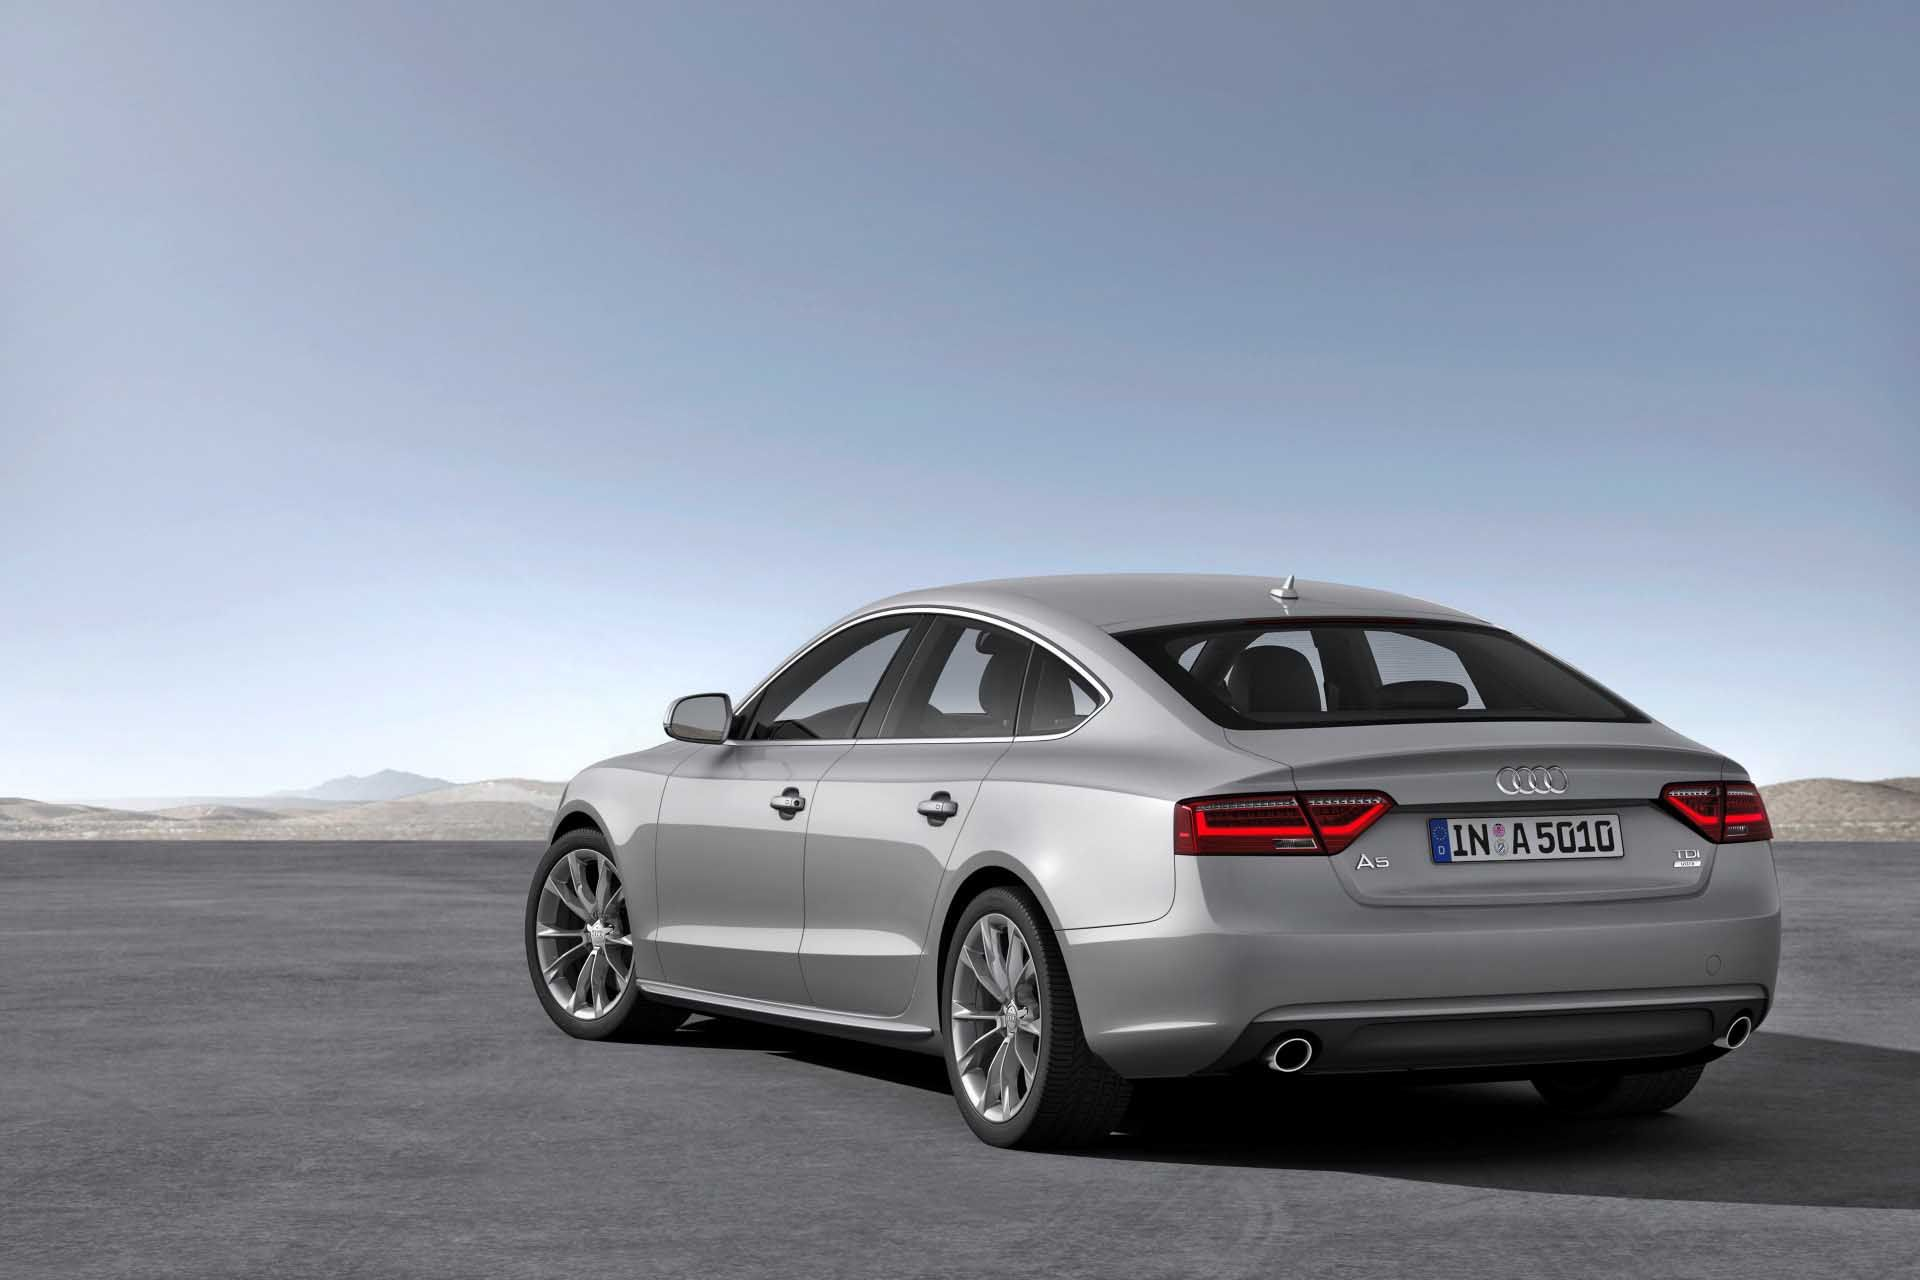 1920x1280 - Audi A5 Wallpapers 29